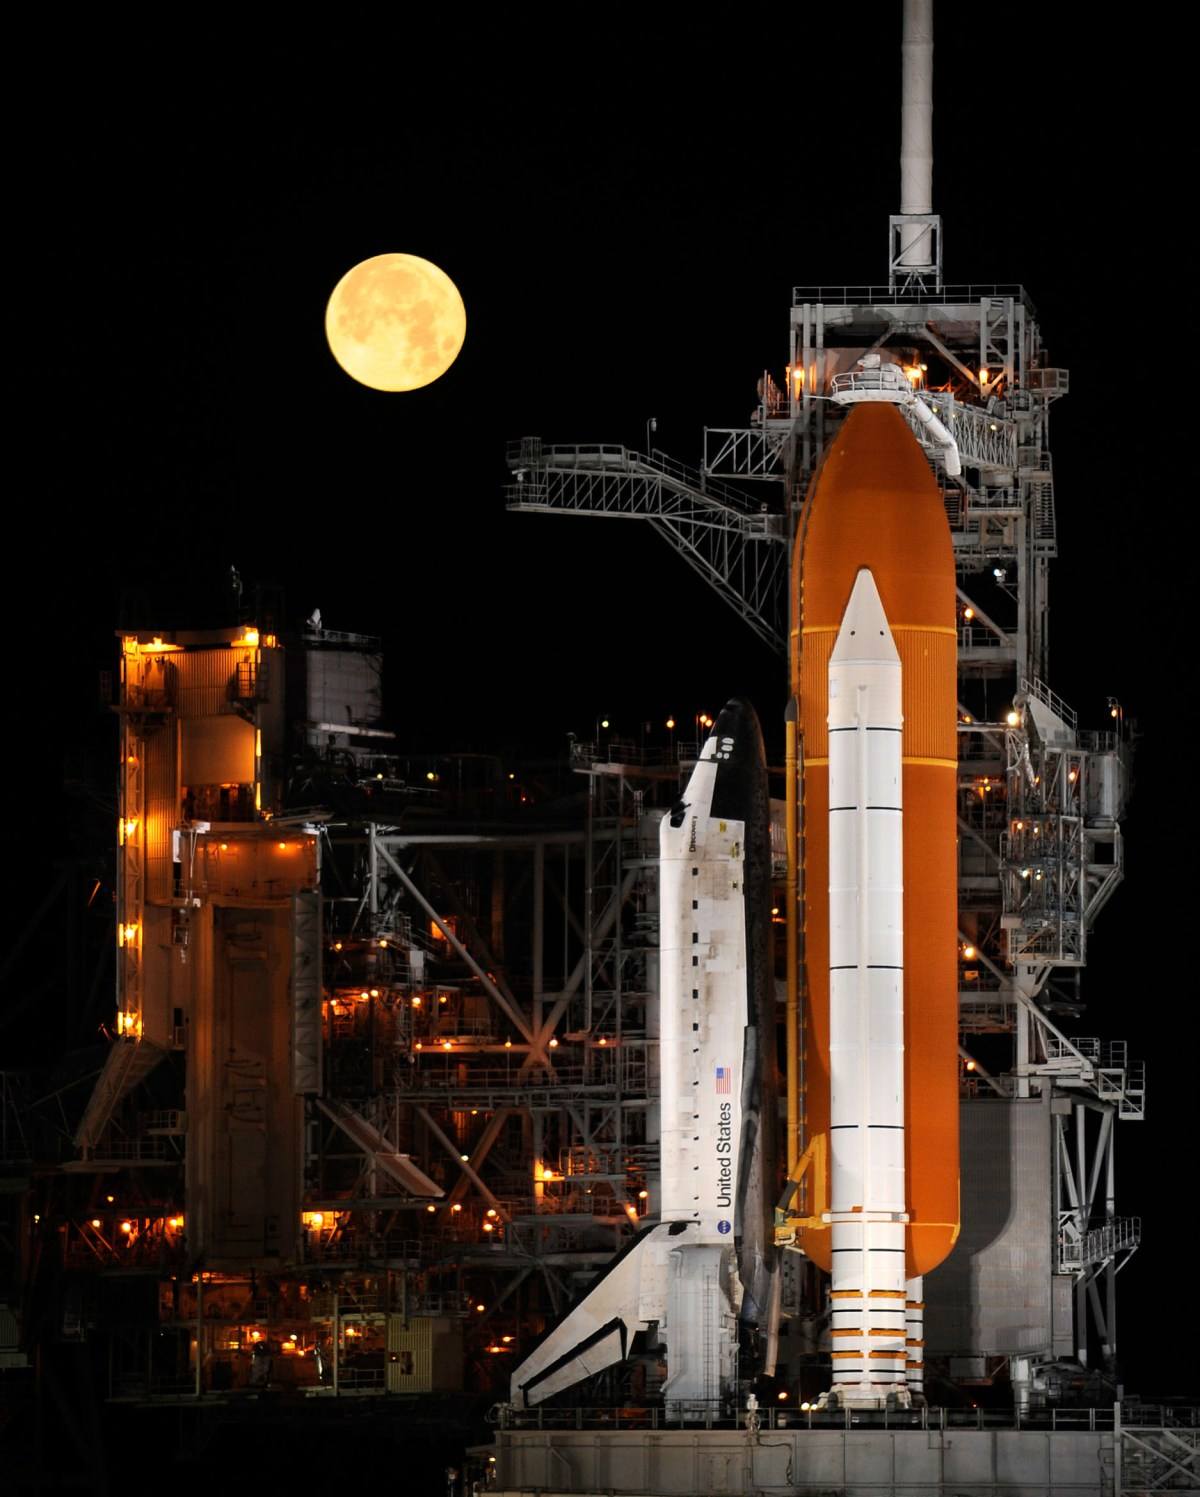 STS-119 Shuttle Discovery With Moon